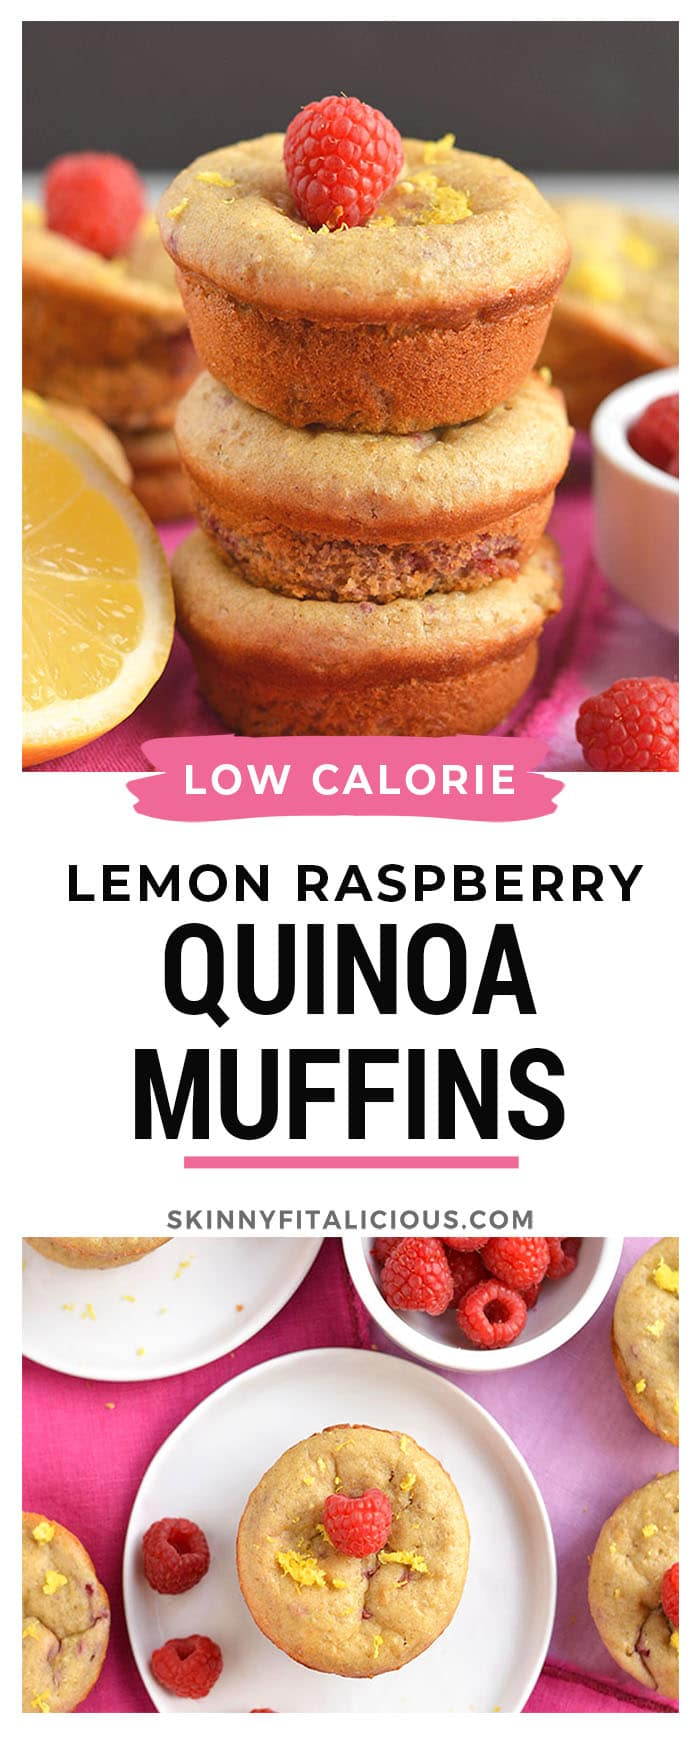 Moist and fluffy Raspberry Lemon Quinoa Muffins! These protein-packed muffins have summery flavors, are lightly sweet and packed with nourishment. Great for breakfast, brunch, or anytime! Gluten Free + Low Calorie